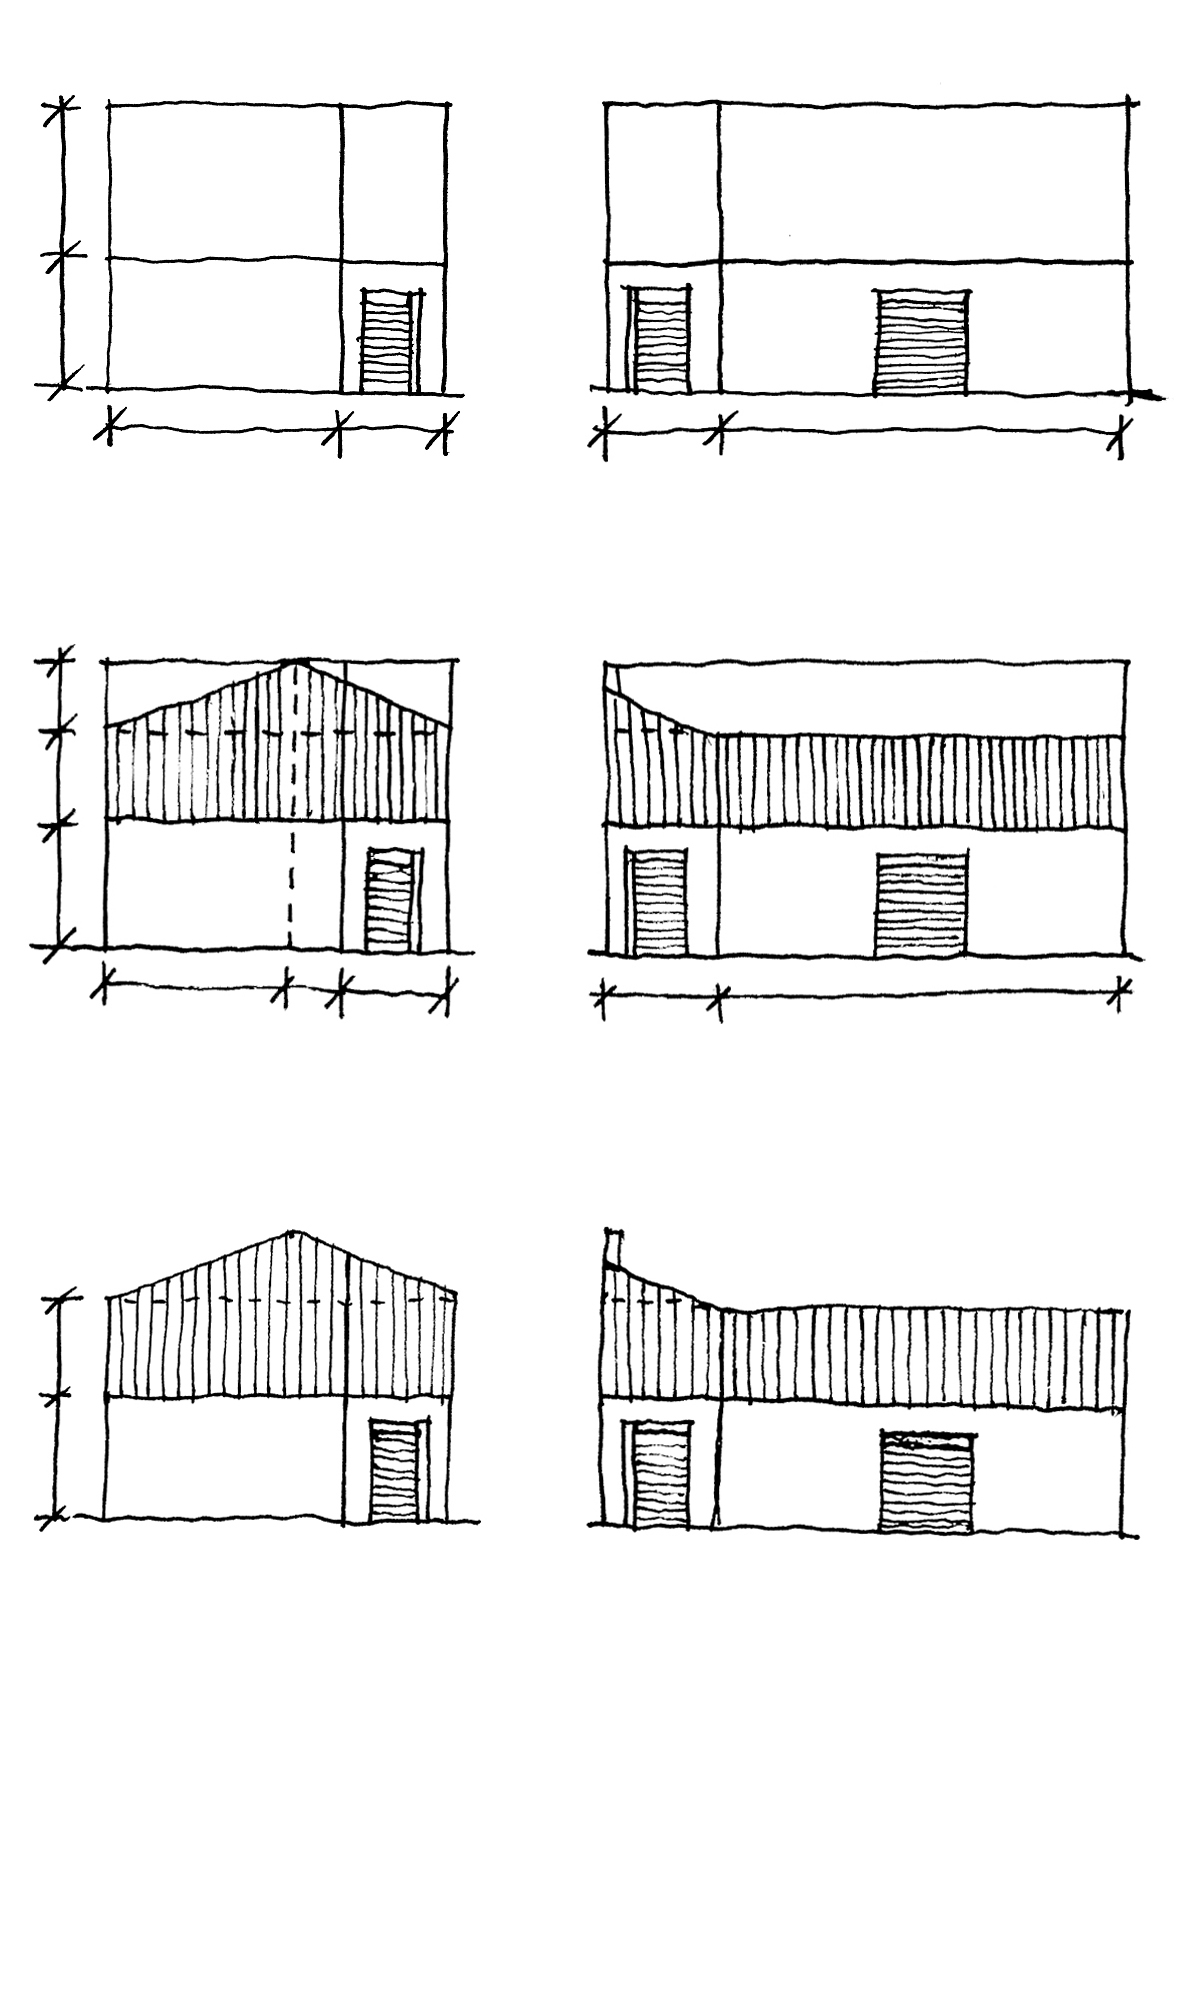 CONSETT WORKS SKETCHES